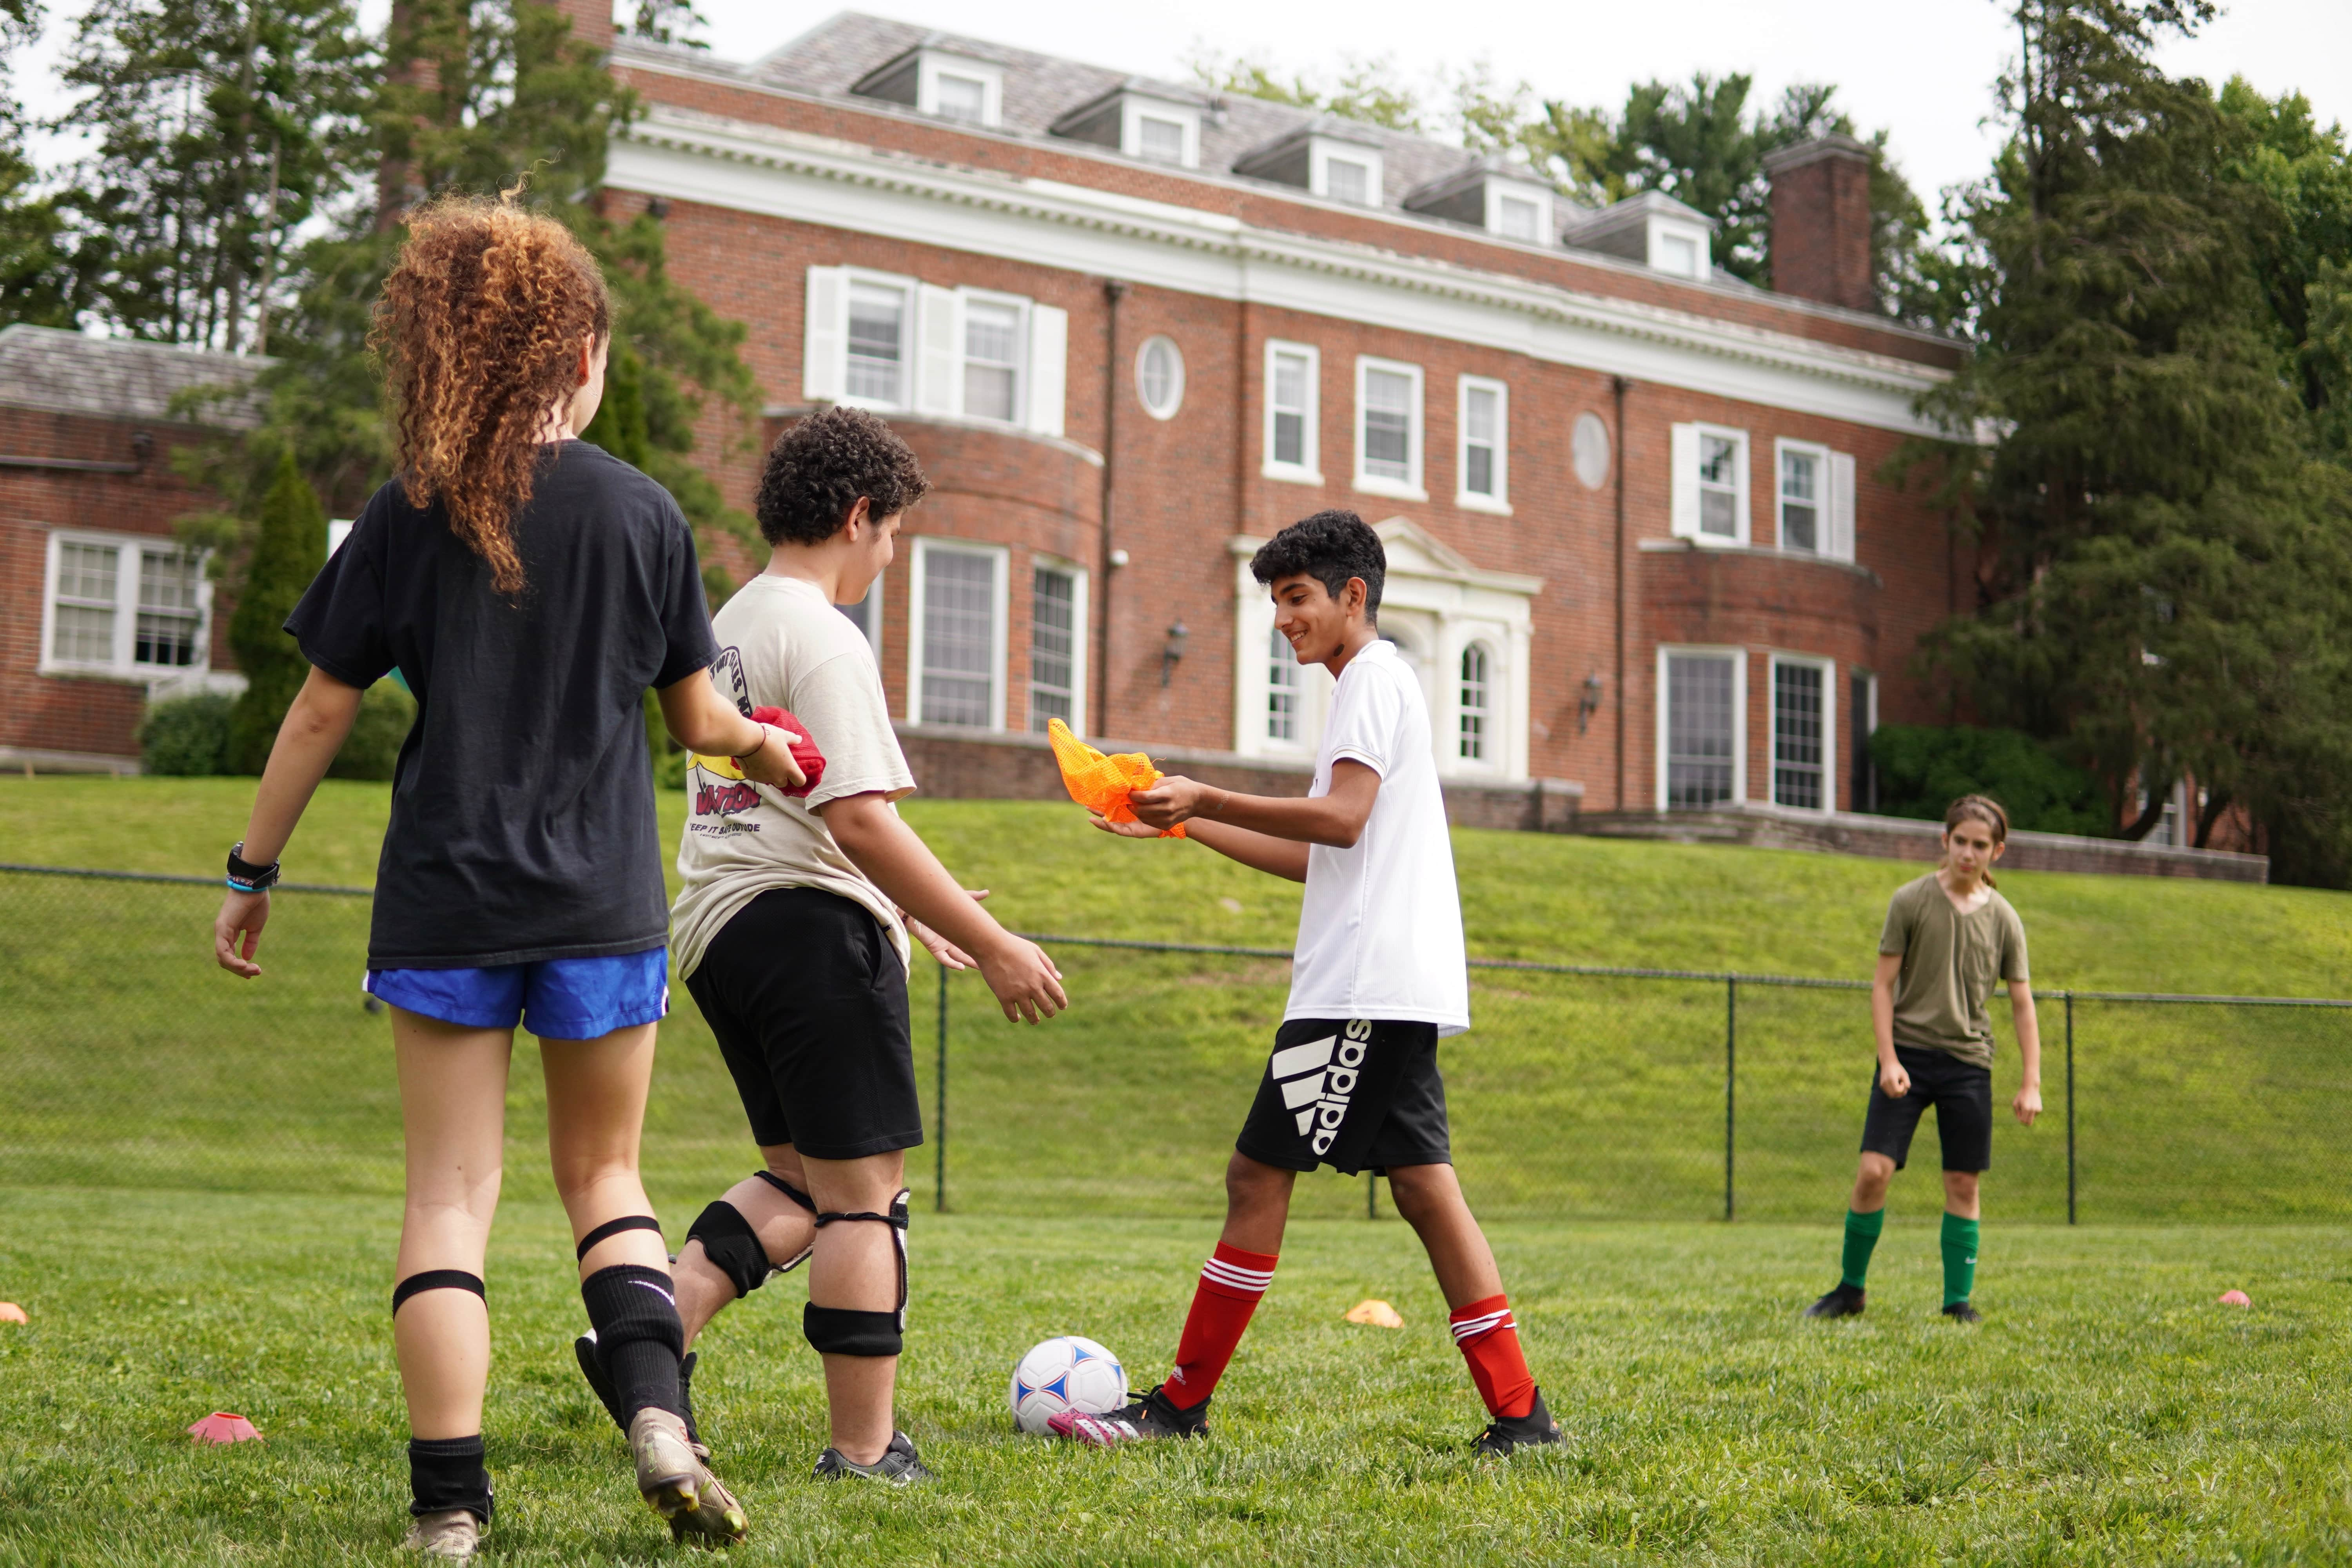 Students gather outdoors on a green field to play soccer. A brick building fills the background behind them.